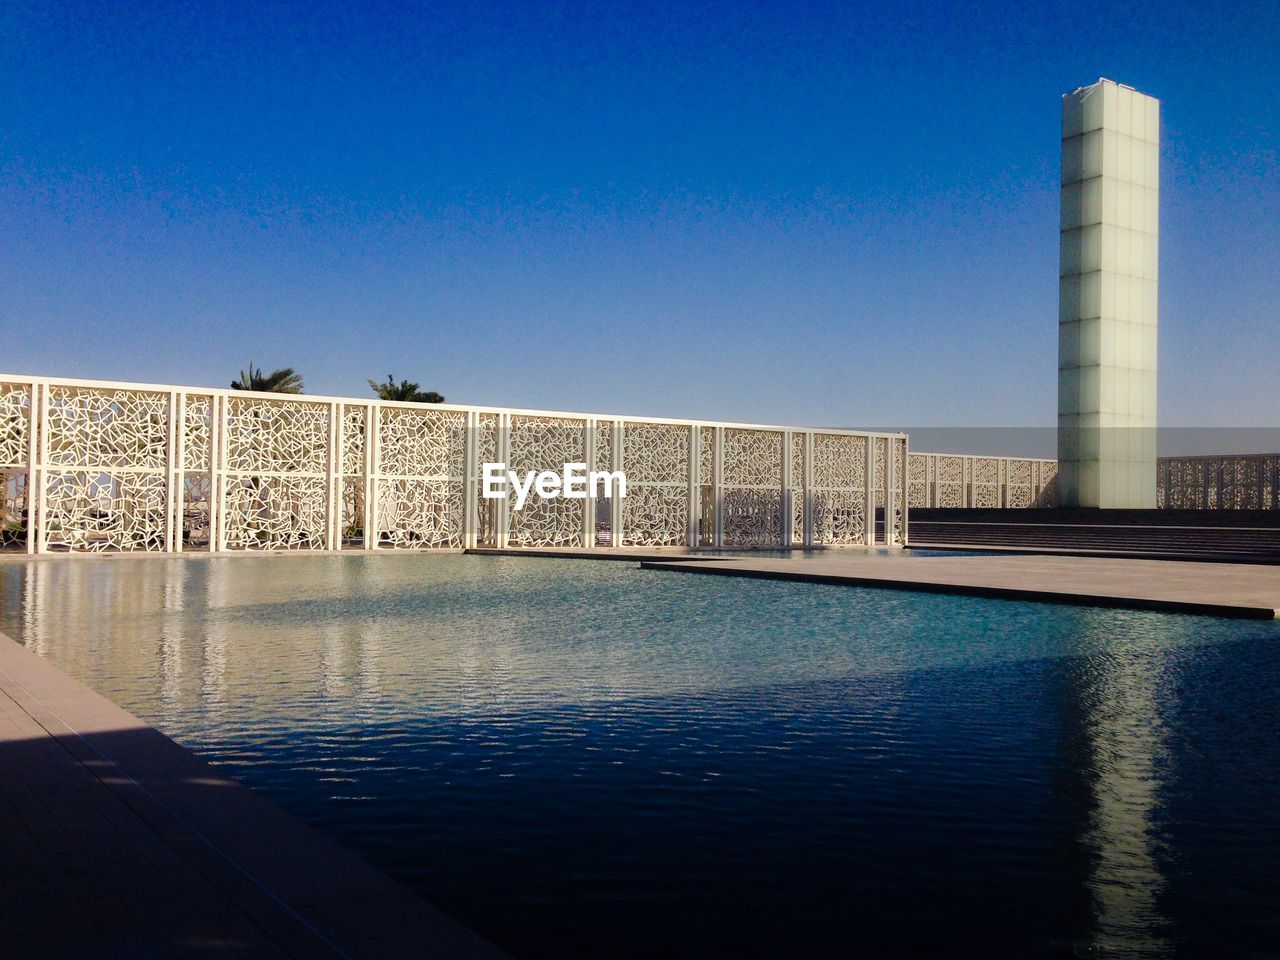 built structure, architecture, blue, building exterior, clear sky, water, reflection, no people, outdoors, travel destinations, day, sky